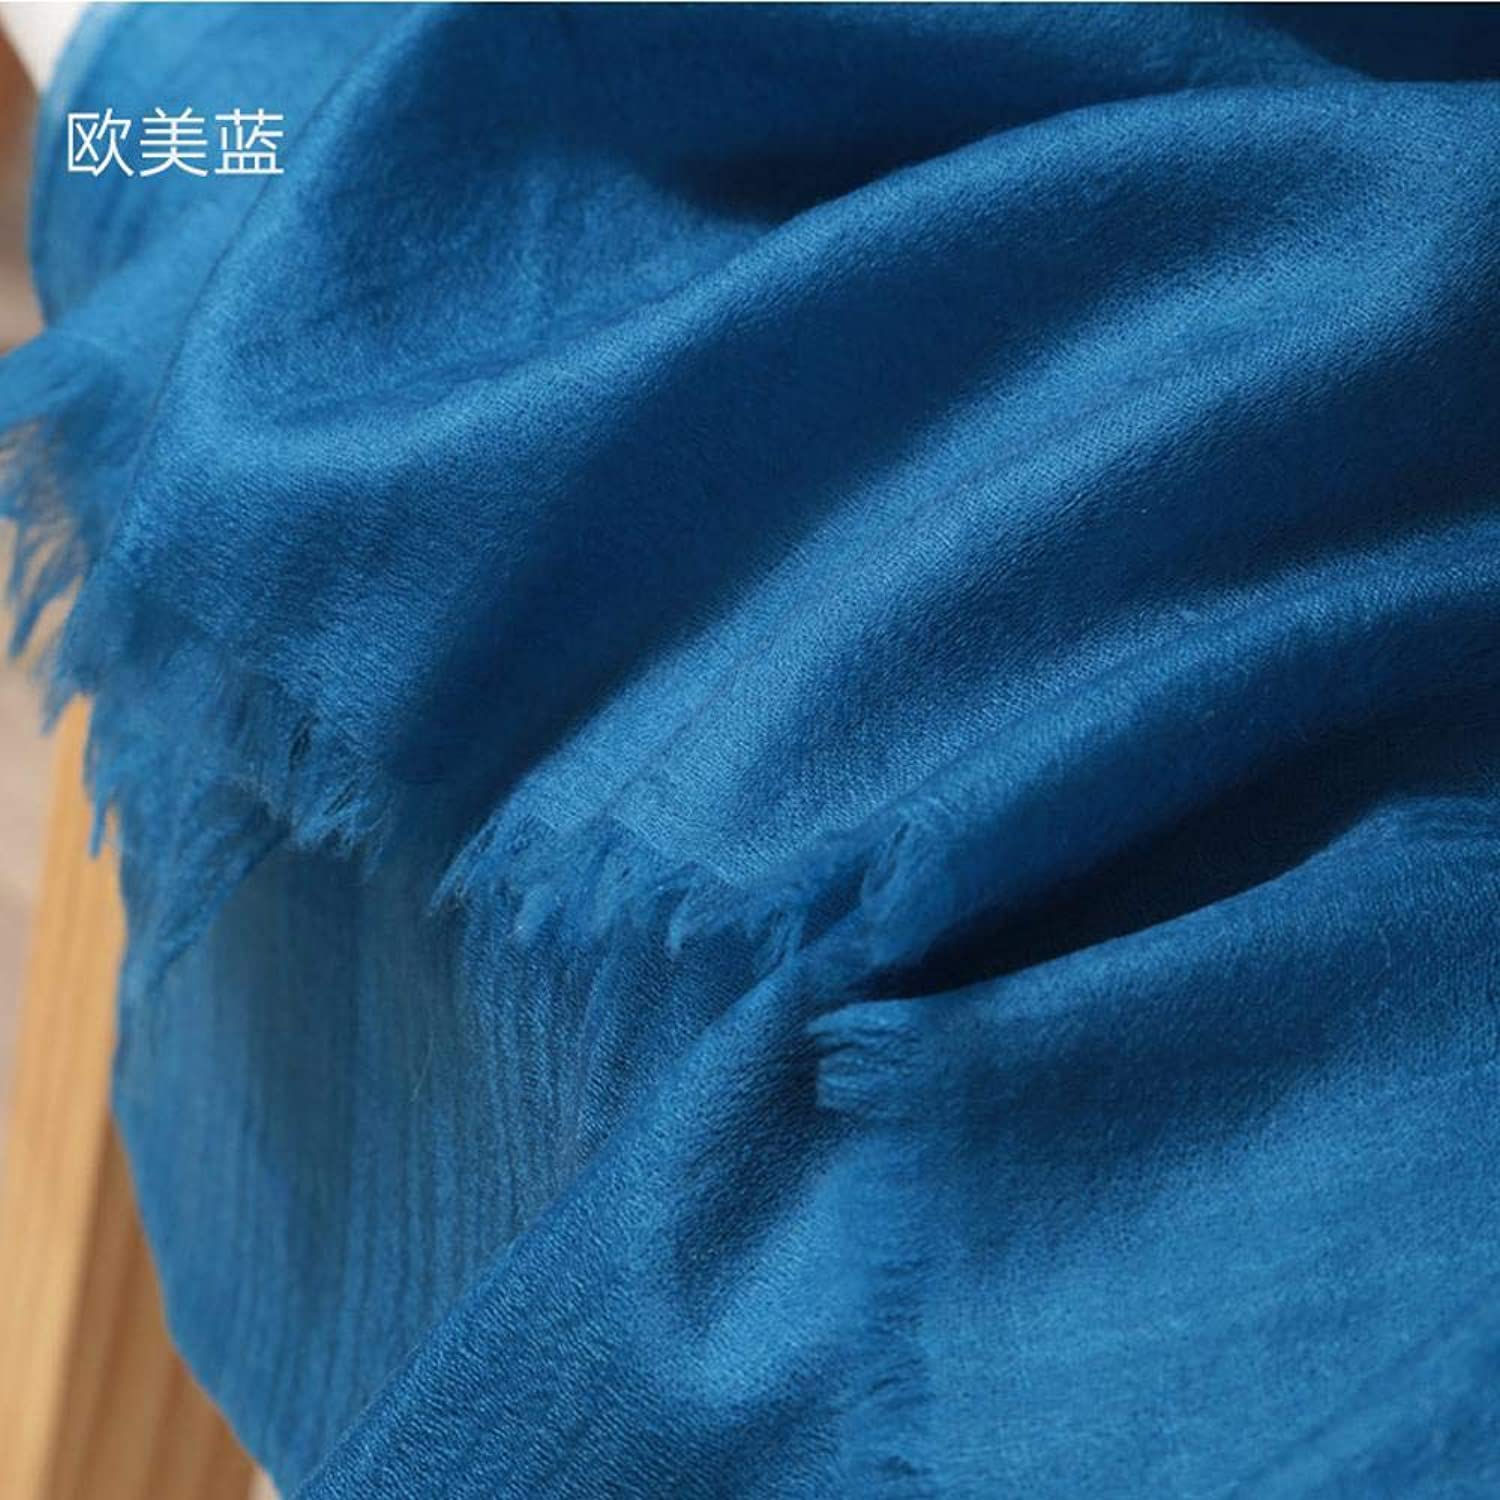 Gquan Fashion Scarf highGrade Warm Scarf Shawl Lady's Solid color Thickened Fashion Shawl Scarf